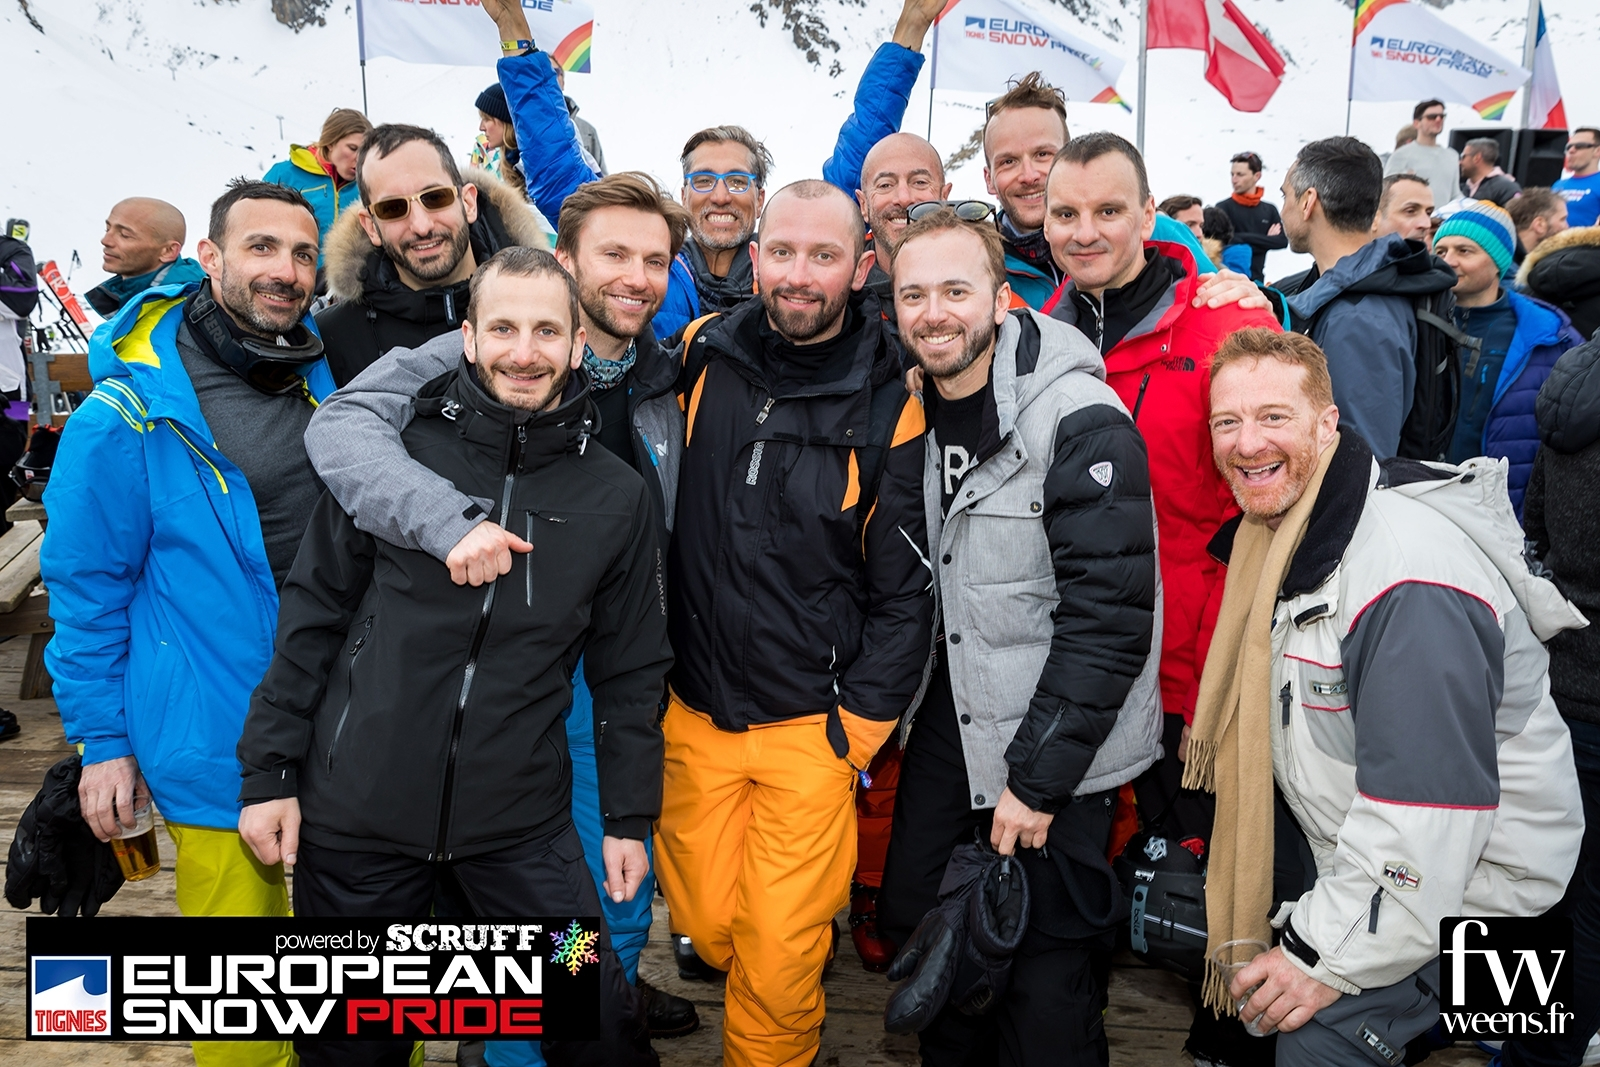 European Snow Pride 2018